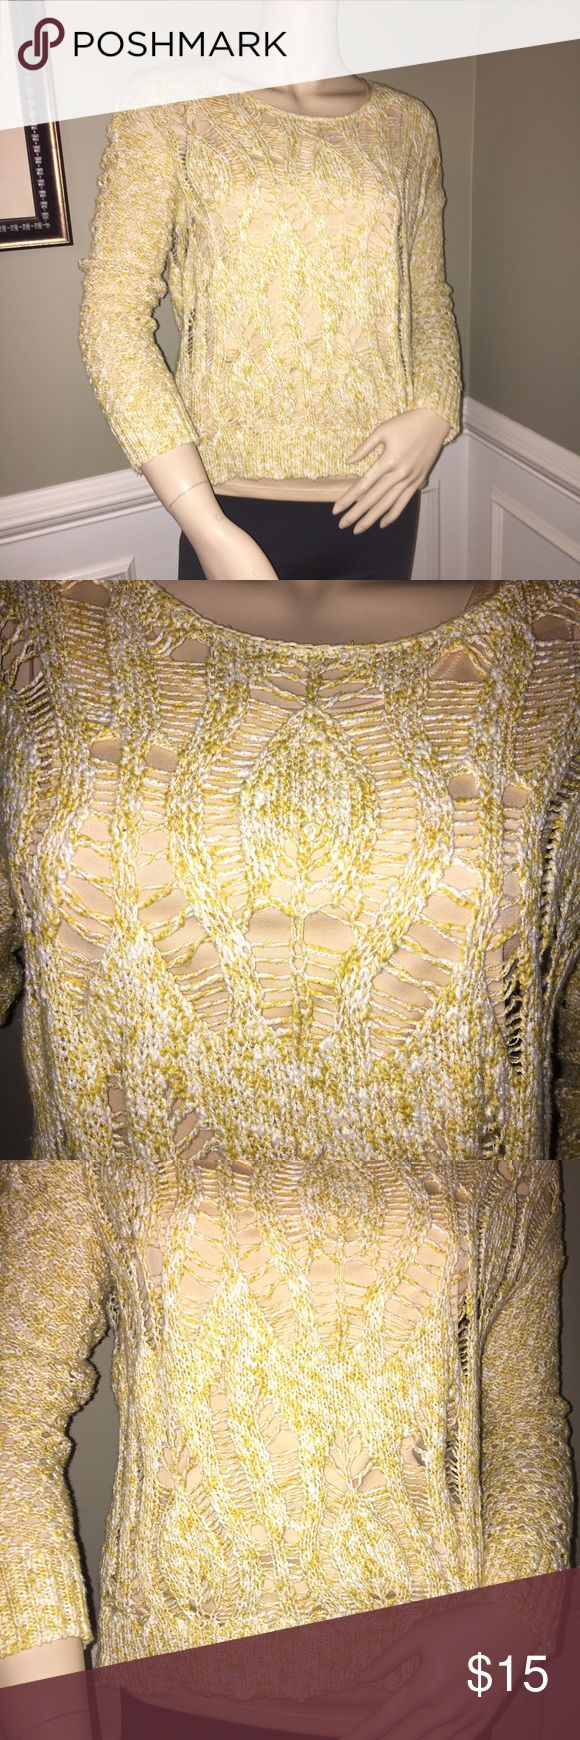 ❄️ American Eagle Yellow and White Marbled Knit Part of Winter Clearance Sale! Great condition and perfect for spring! Toss a contrasting cami underneath with distressed ankle jeans and Sperrys and you have yourself an adorable and comfy outfit. Bundle and save ☀️ American Eagle Outfitters Sweaters Crew & Scoop Necks